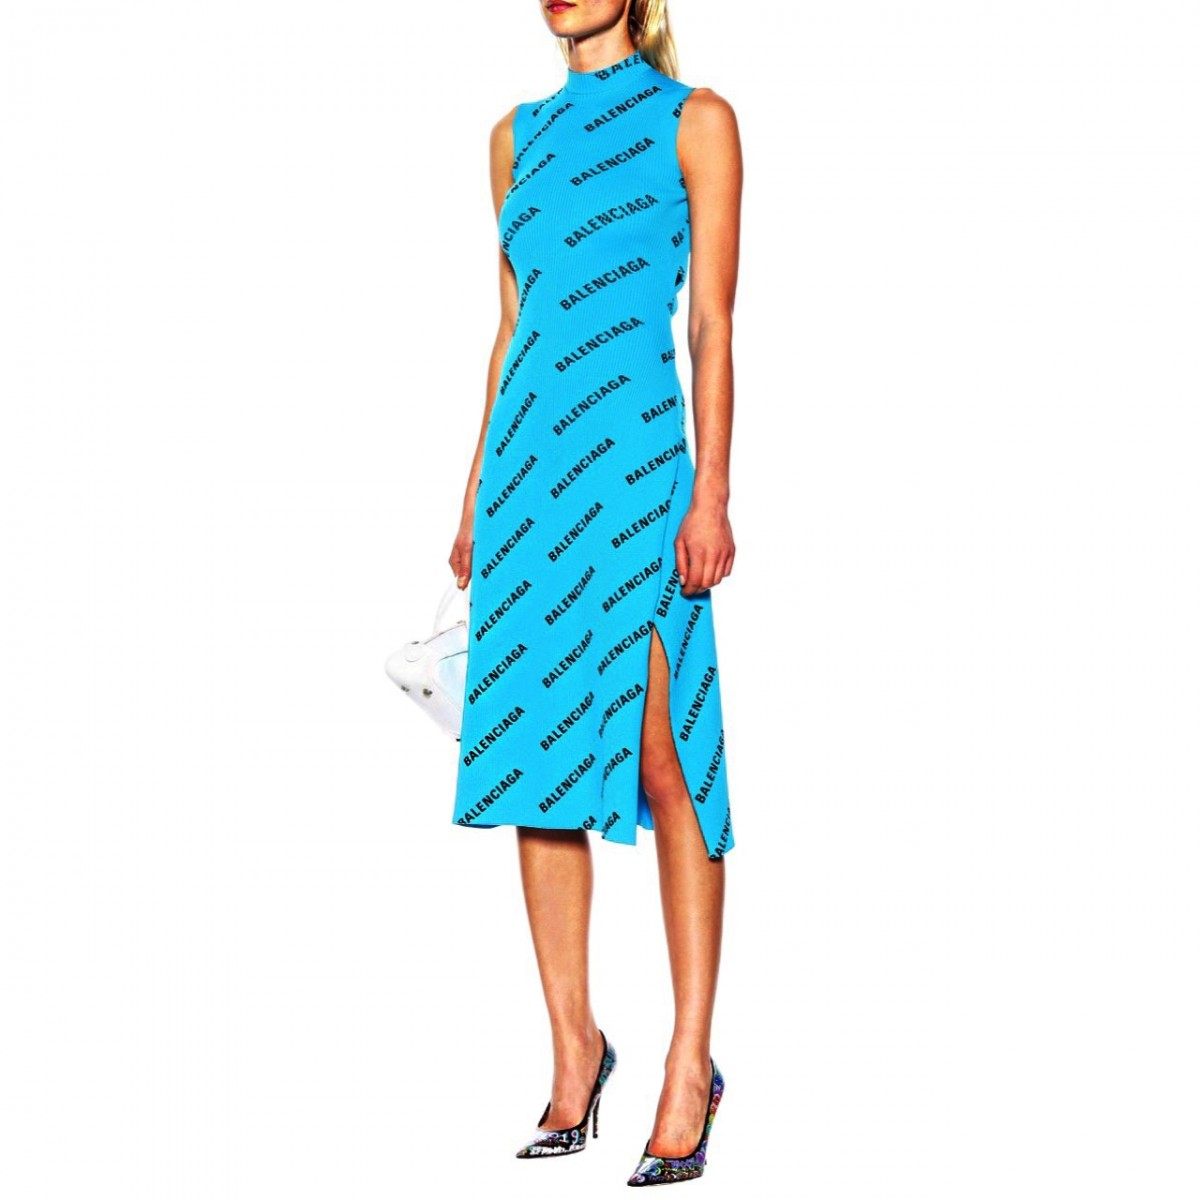 huge sale special sales reputable site BALENCIAGA , Turquoise and Black All Over Logo Wrap Dress - Blue